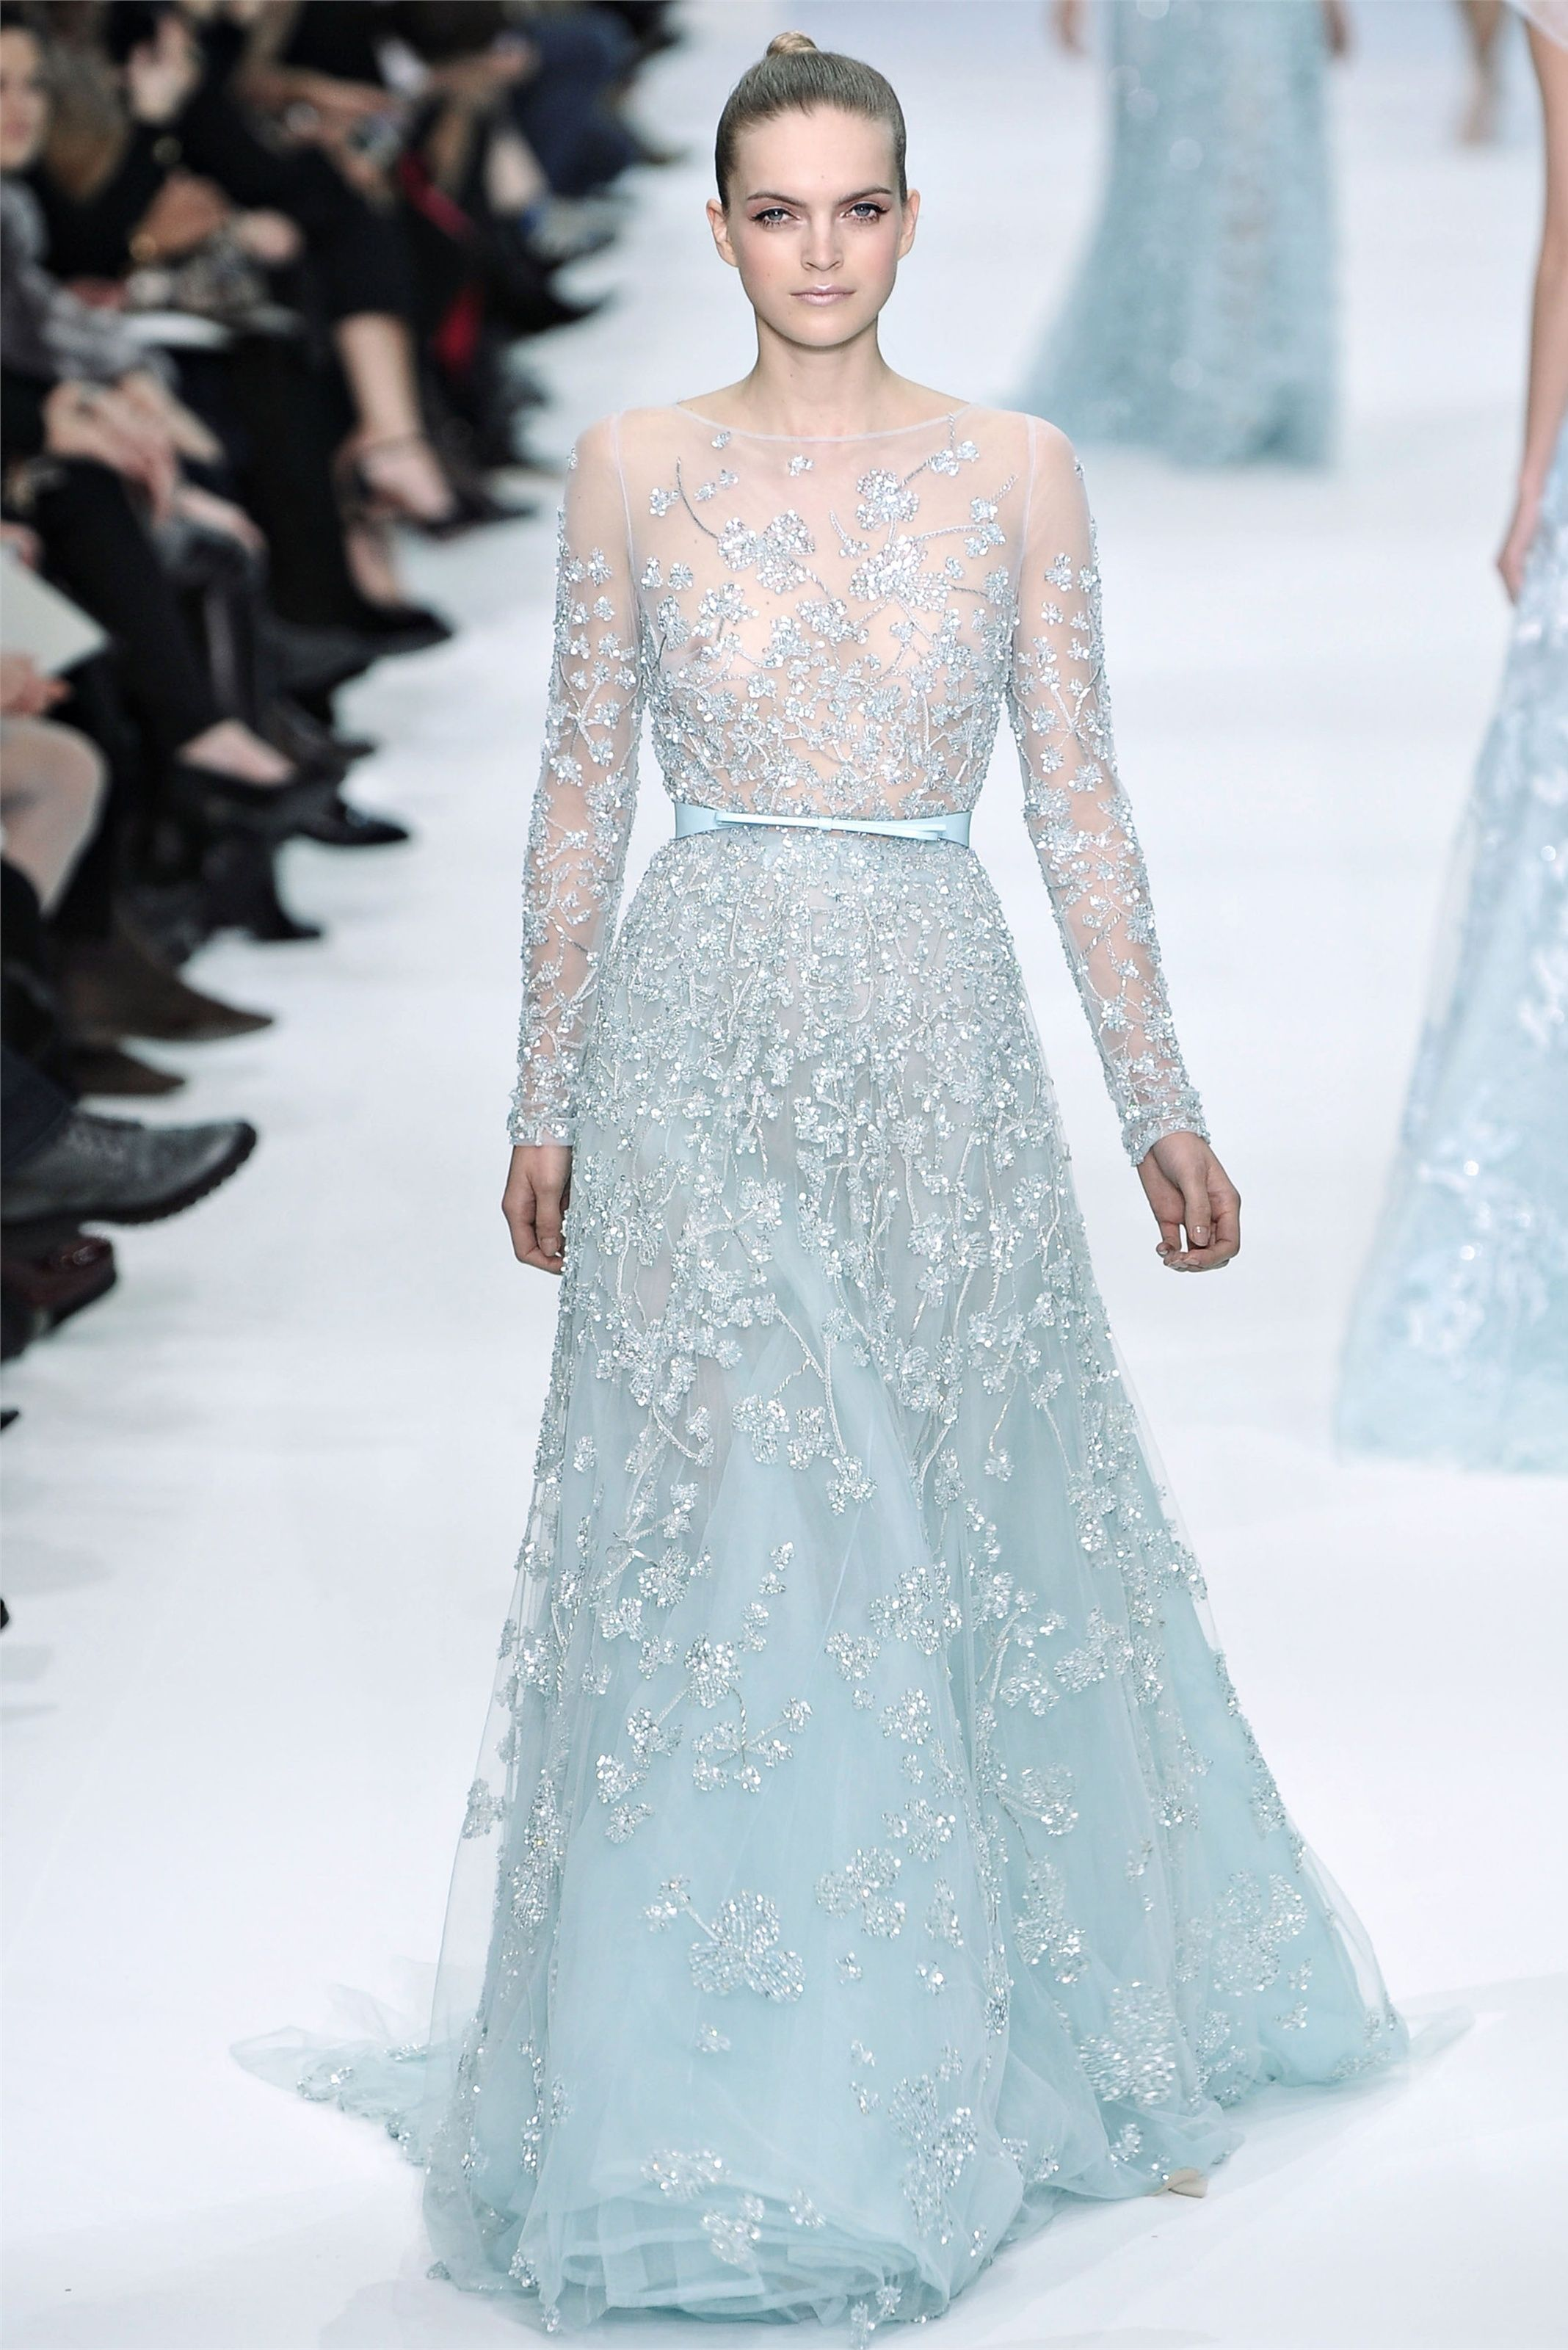 Elie Saab haute couture spring/summer 2012 collection #fashion ...